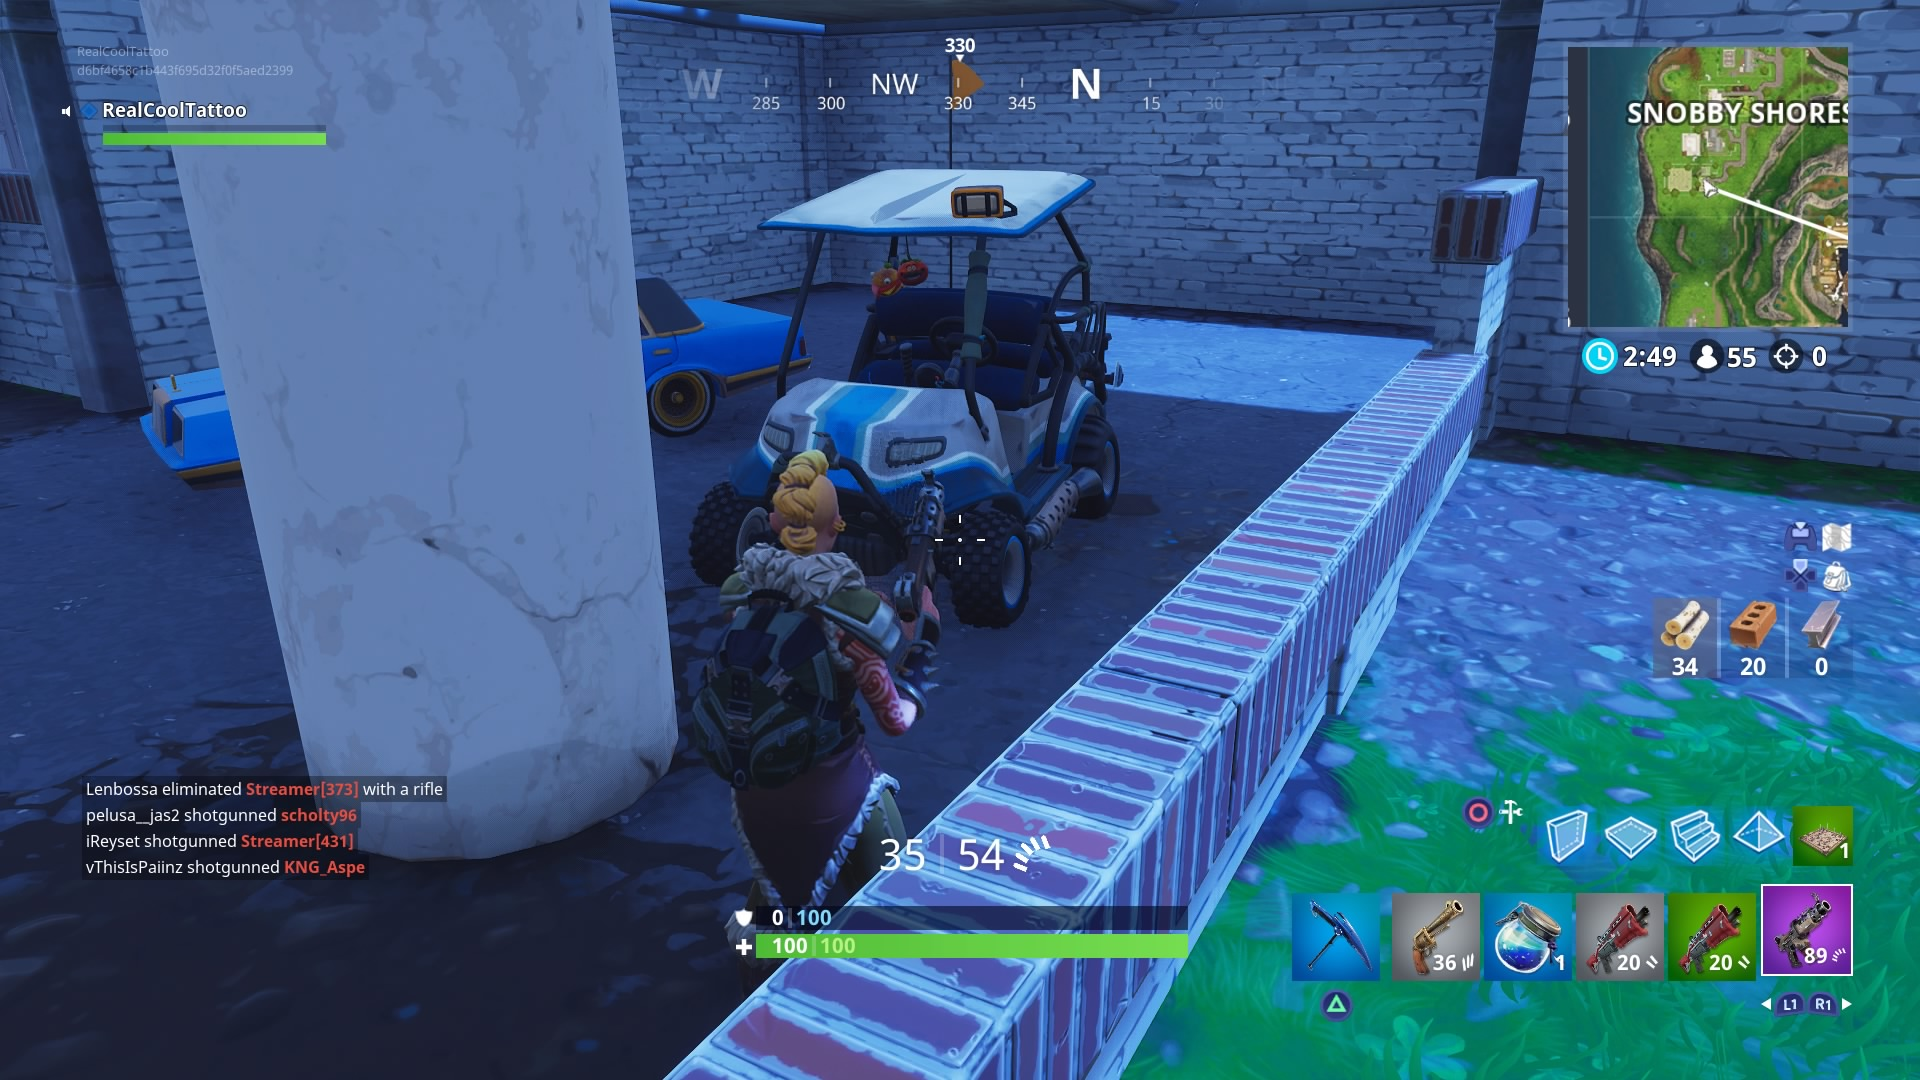 Fortnite Golf Cart Locations Where To Find An Atk All Terrain